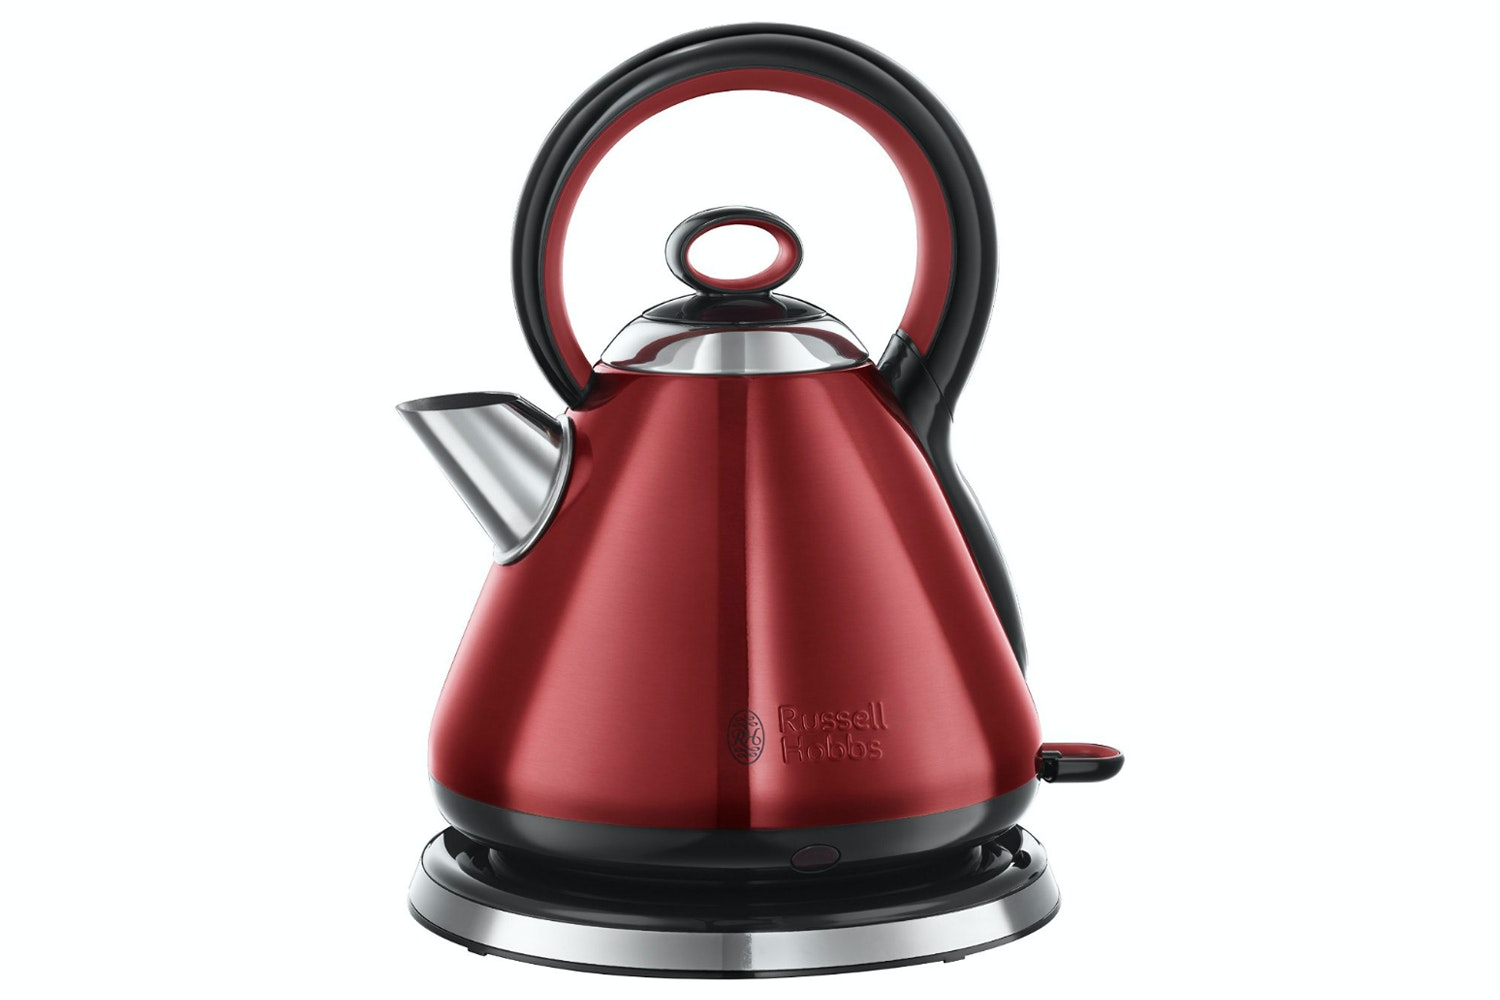 Russell Hobbs 1.7L Legacy Kettle | 21881 | Metallic Red